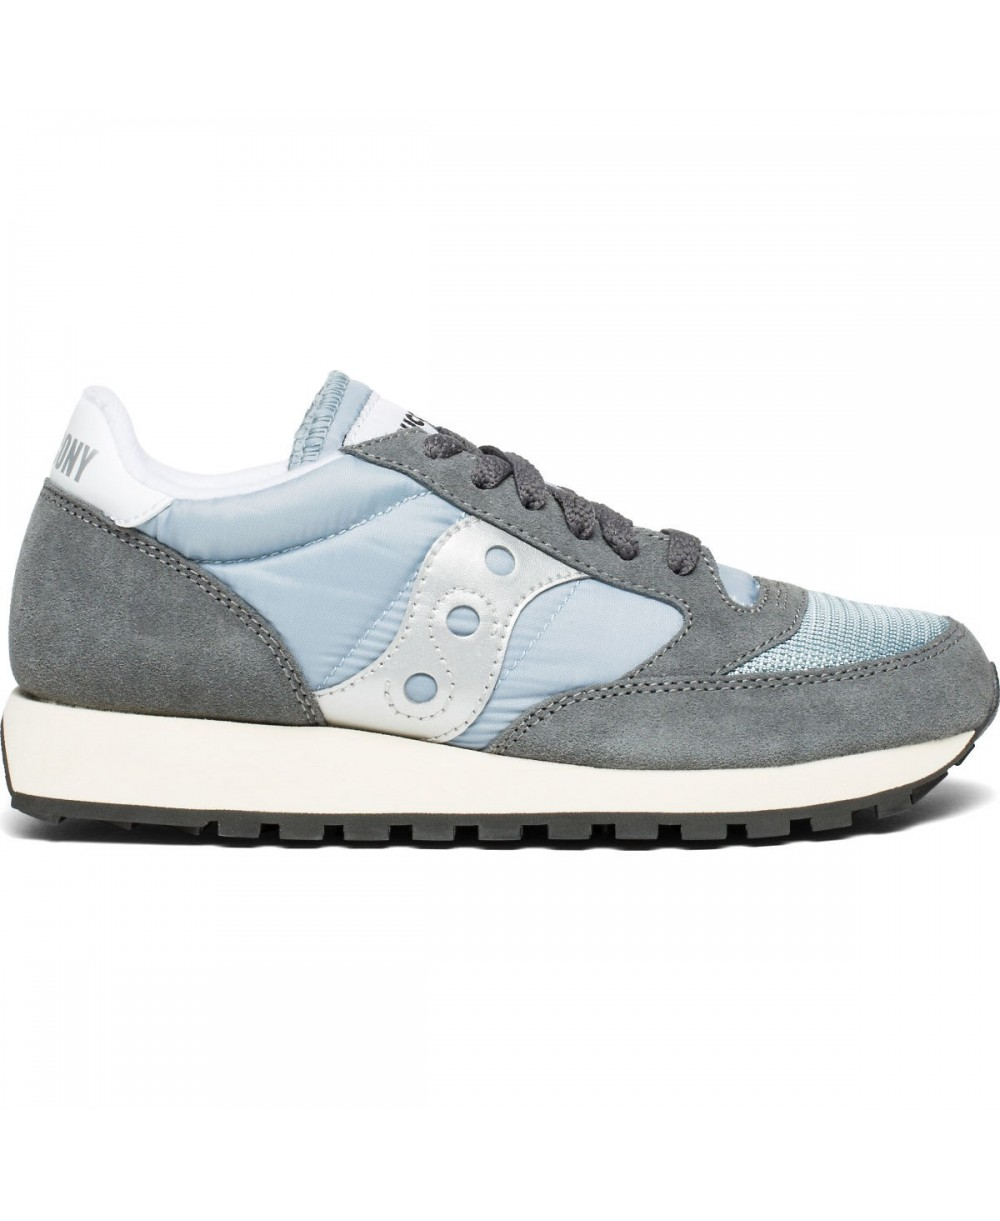 new style 7a3fe 6174e Saucony Jazz Original Vintage Chaussures Sneakers Femme Grey Blue W..